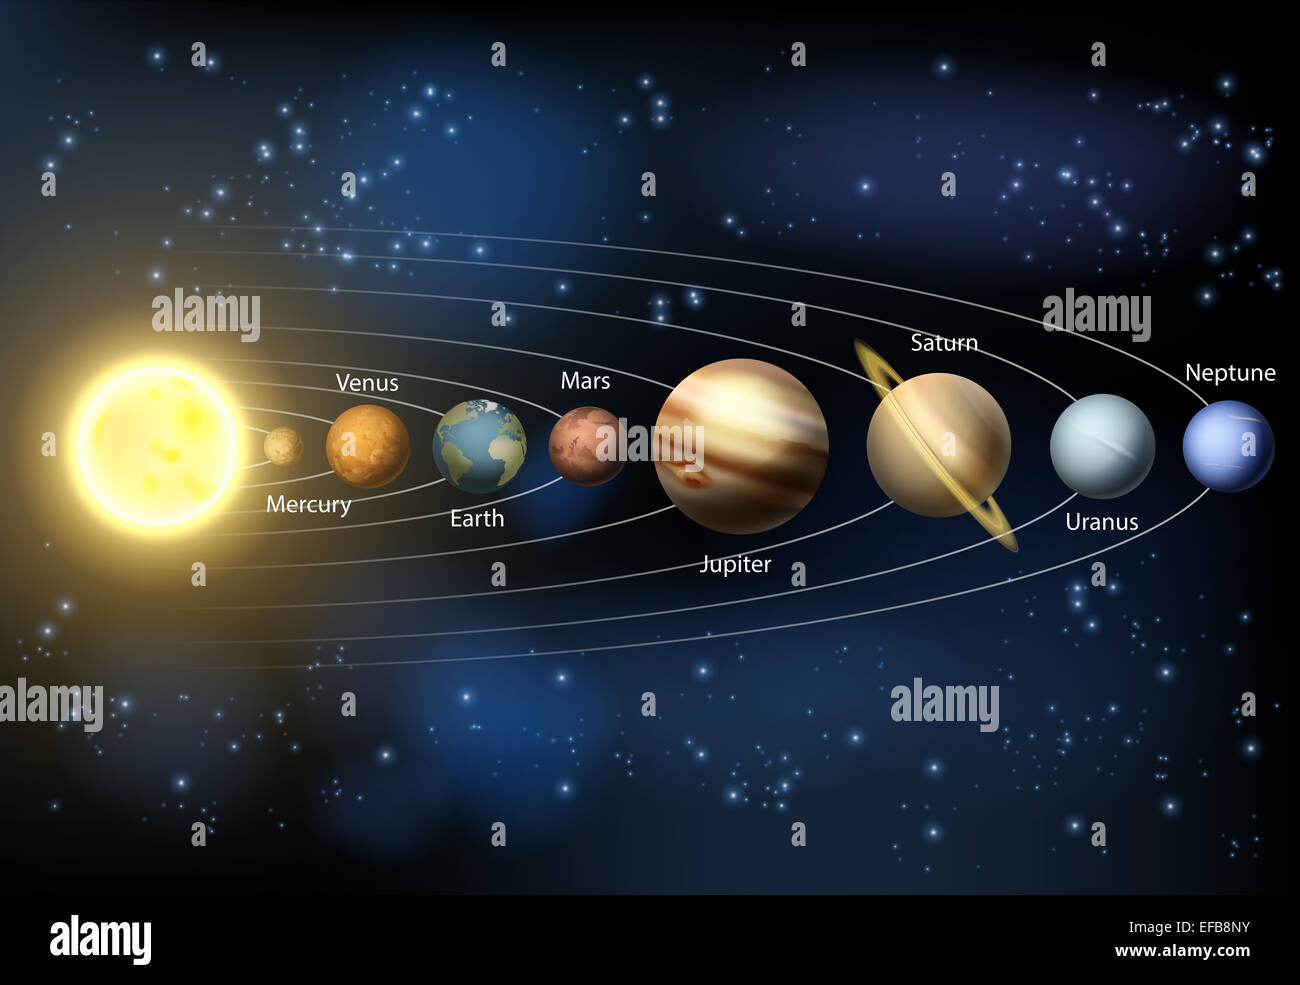 A Diagram Of The Planets In Our Solar System With The